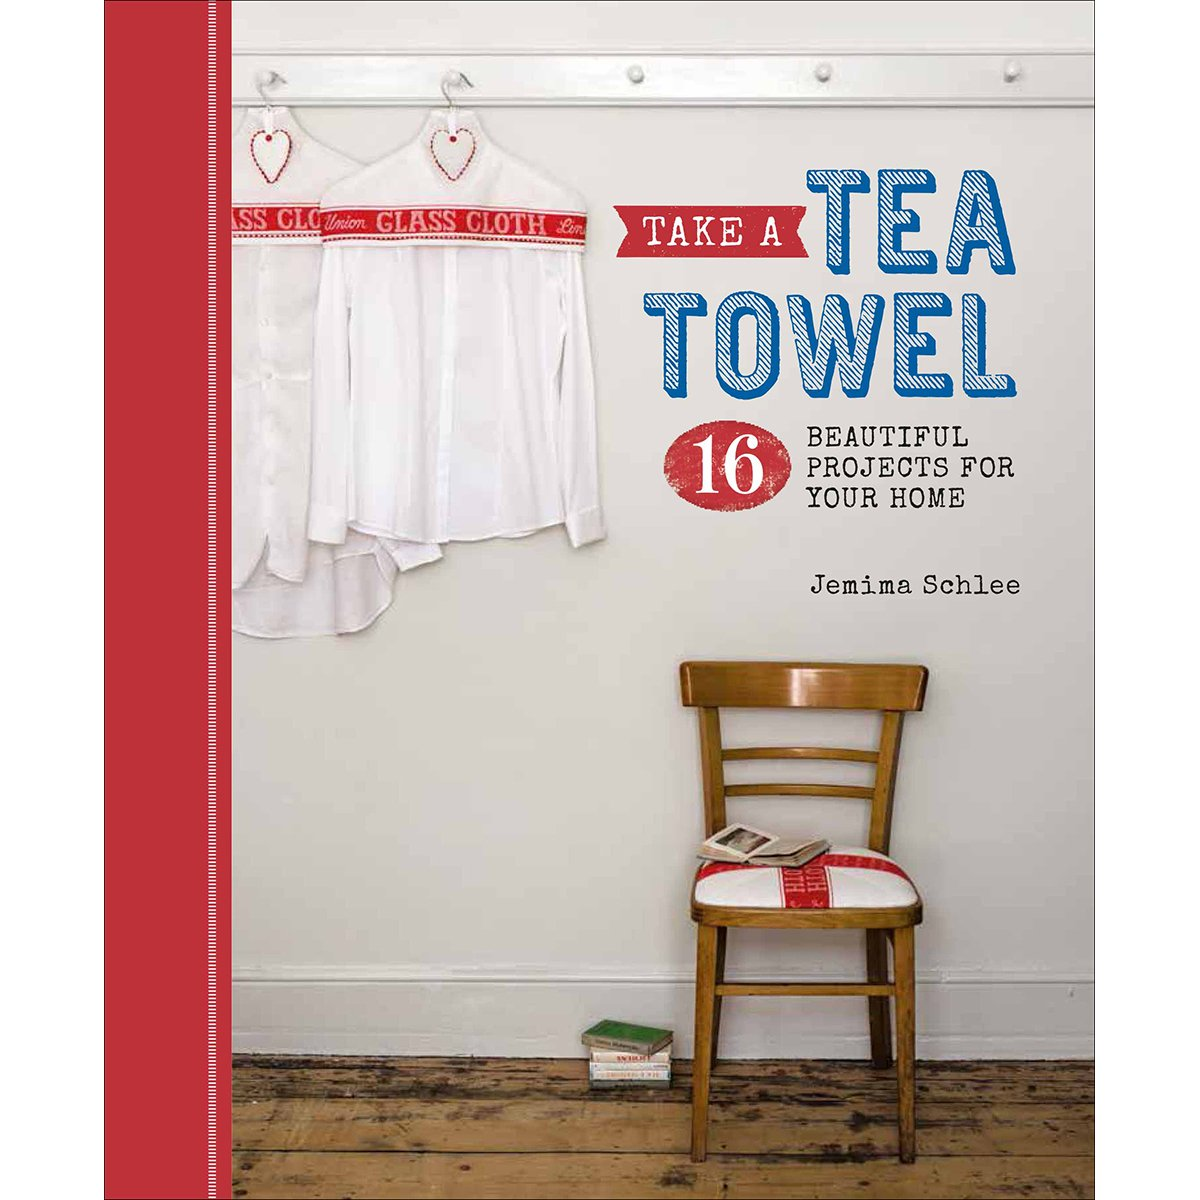 Take a Tea Towel: 16 Beautiful Projects for Your Home